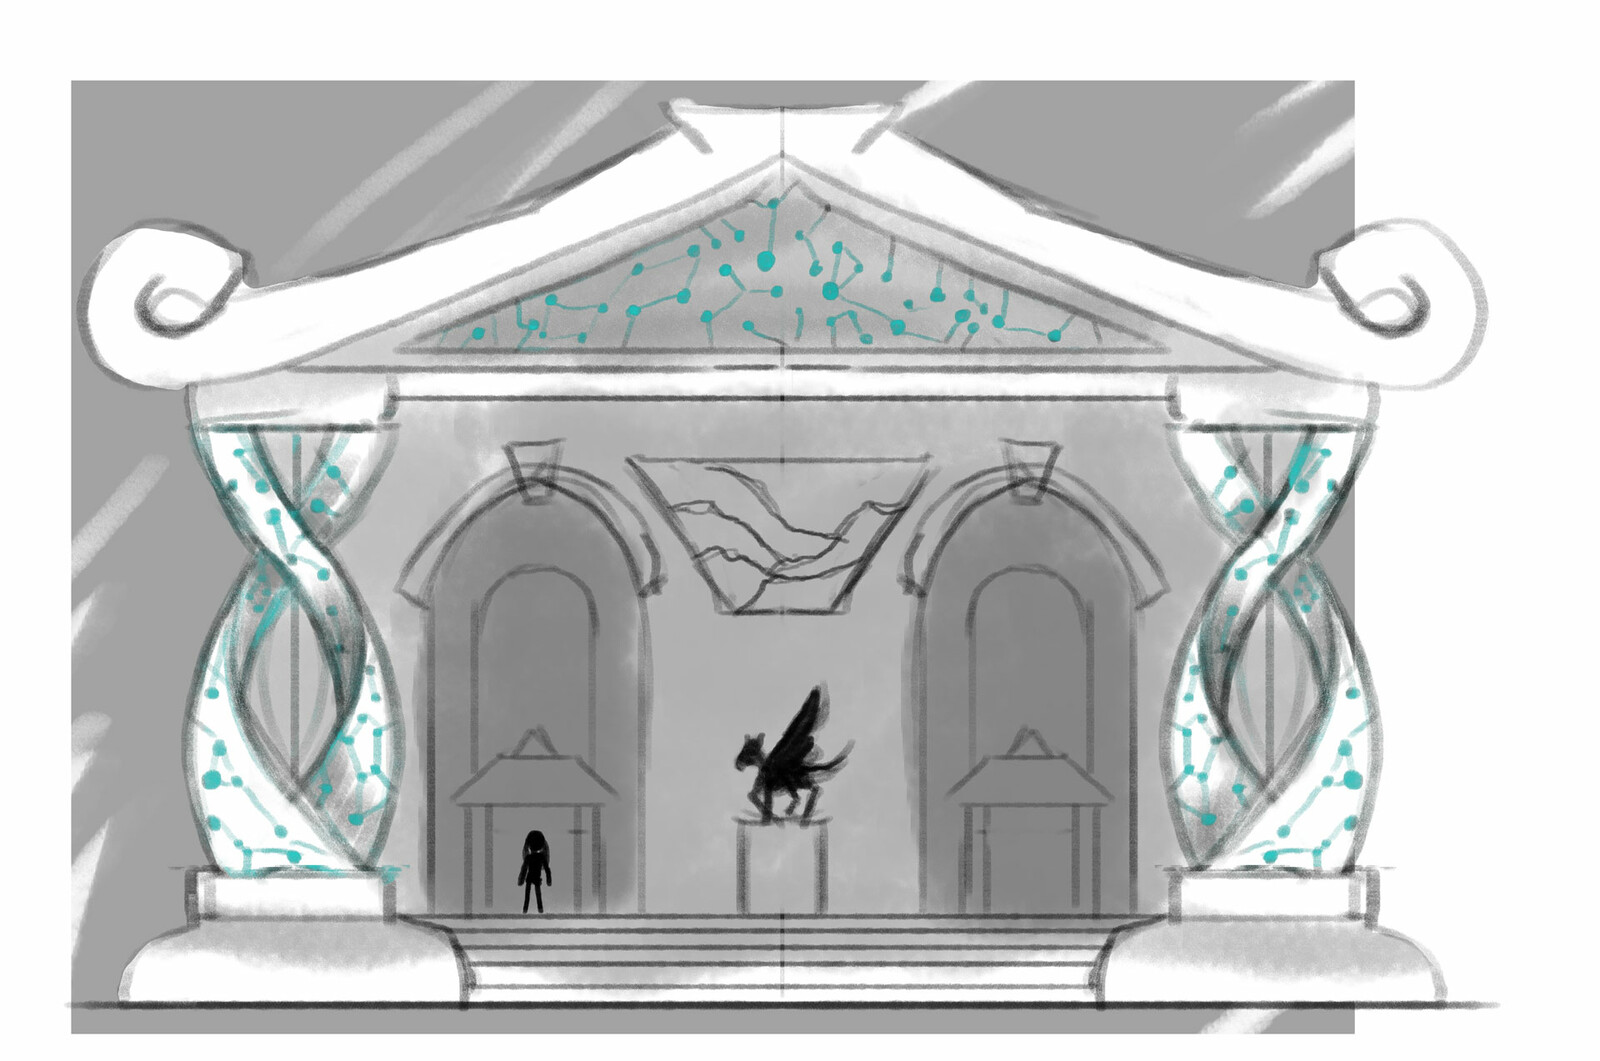 Pegasus Library - inspired by my alma mater with constellations imprinted throughout the facade.